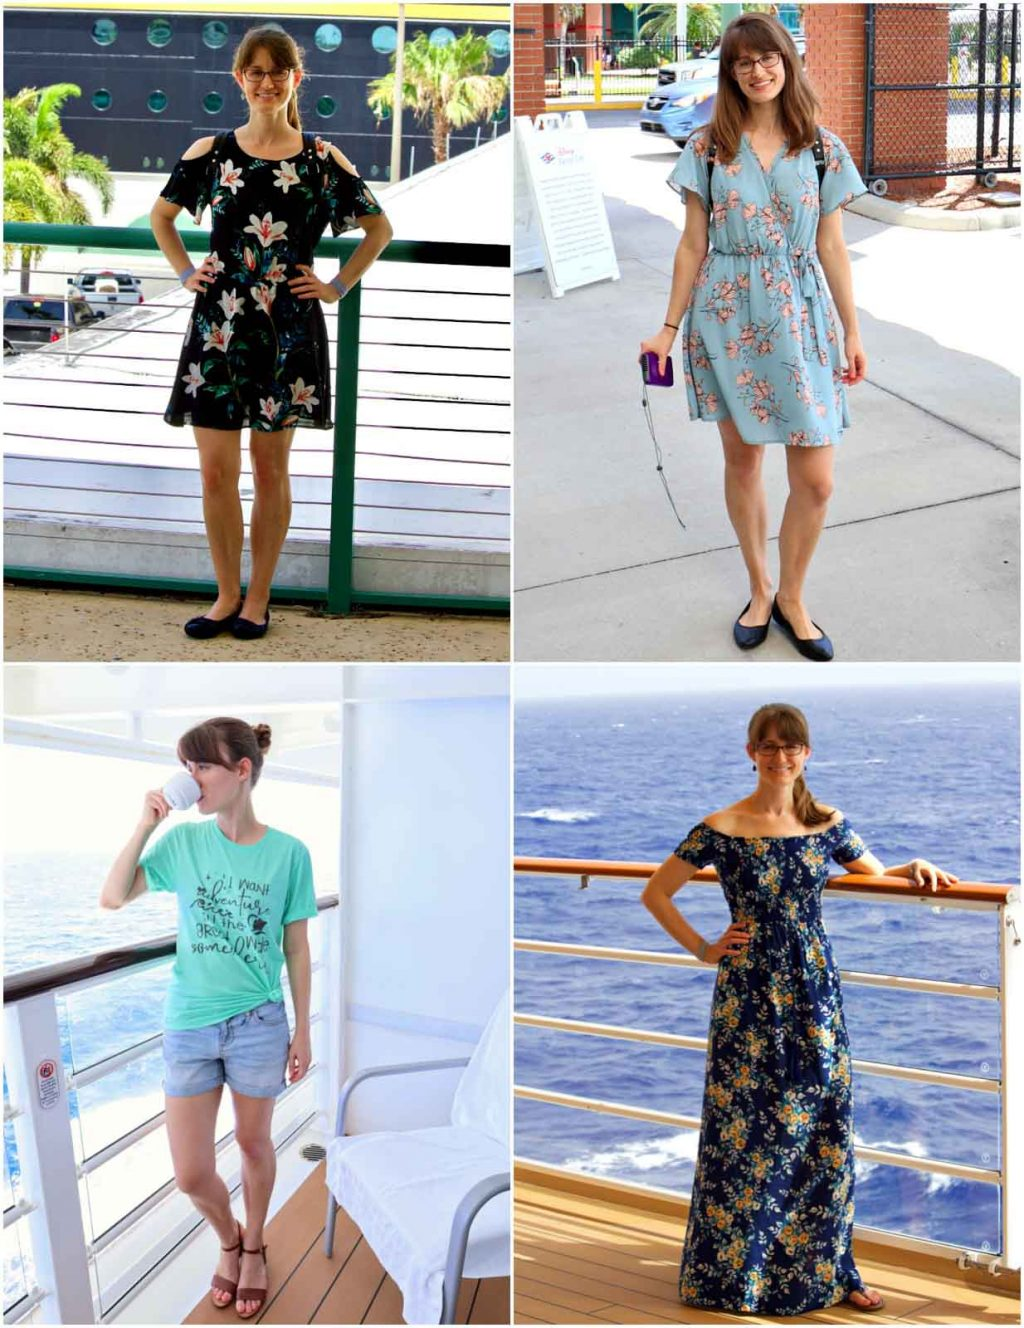 A young woman modeling Disney cruise outfit ideas on the Disney Fantasy.